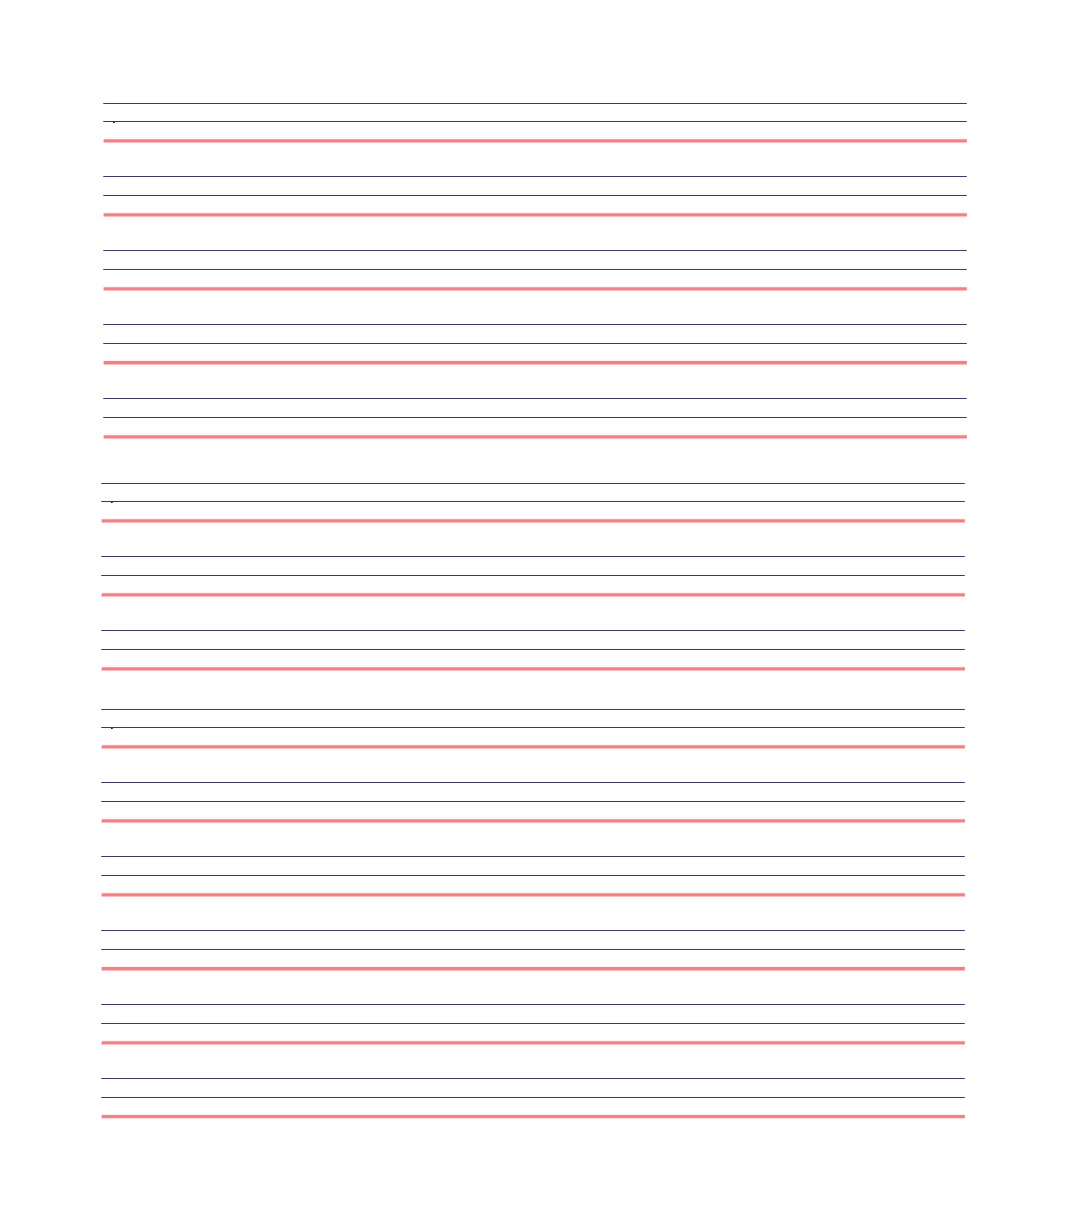 32 Printable Lined Paper Templates ᐅ Template Lab Regarding Ruled Paper Template Word